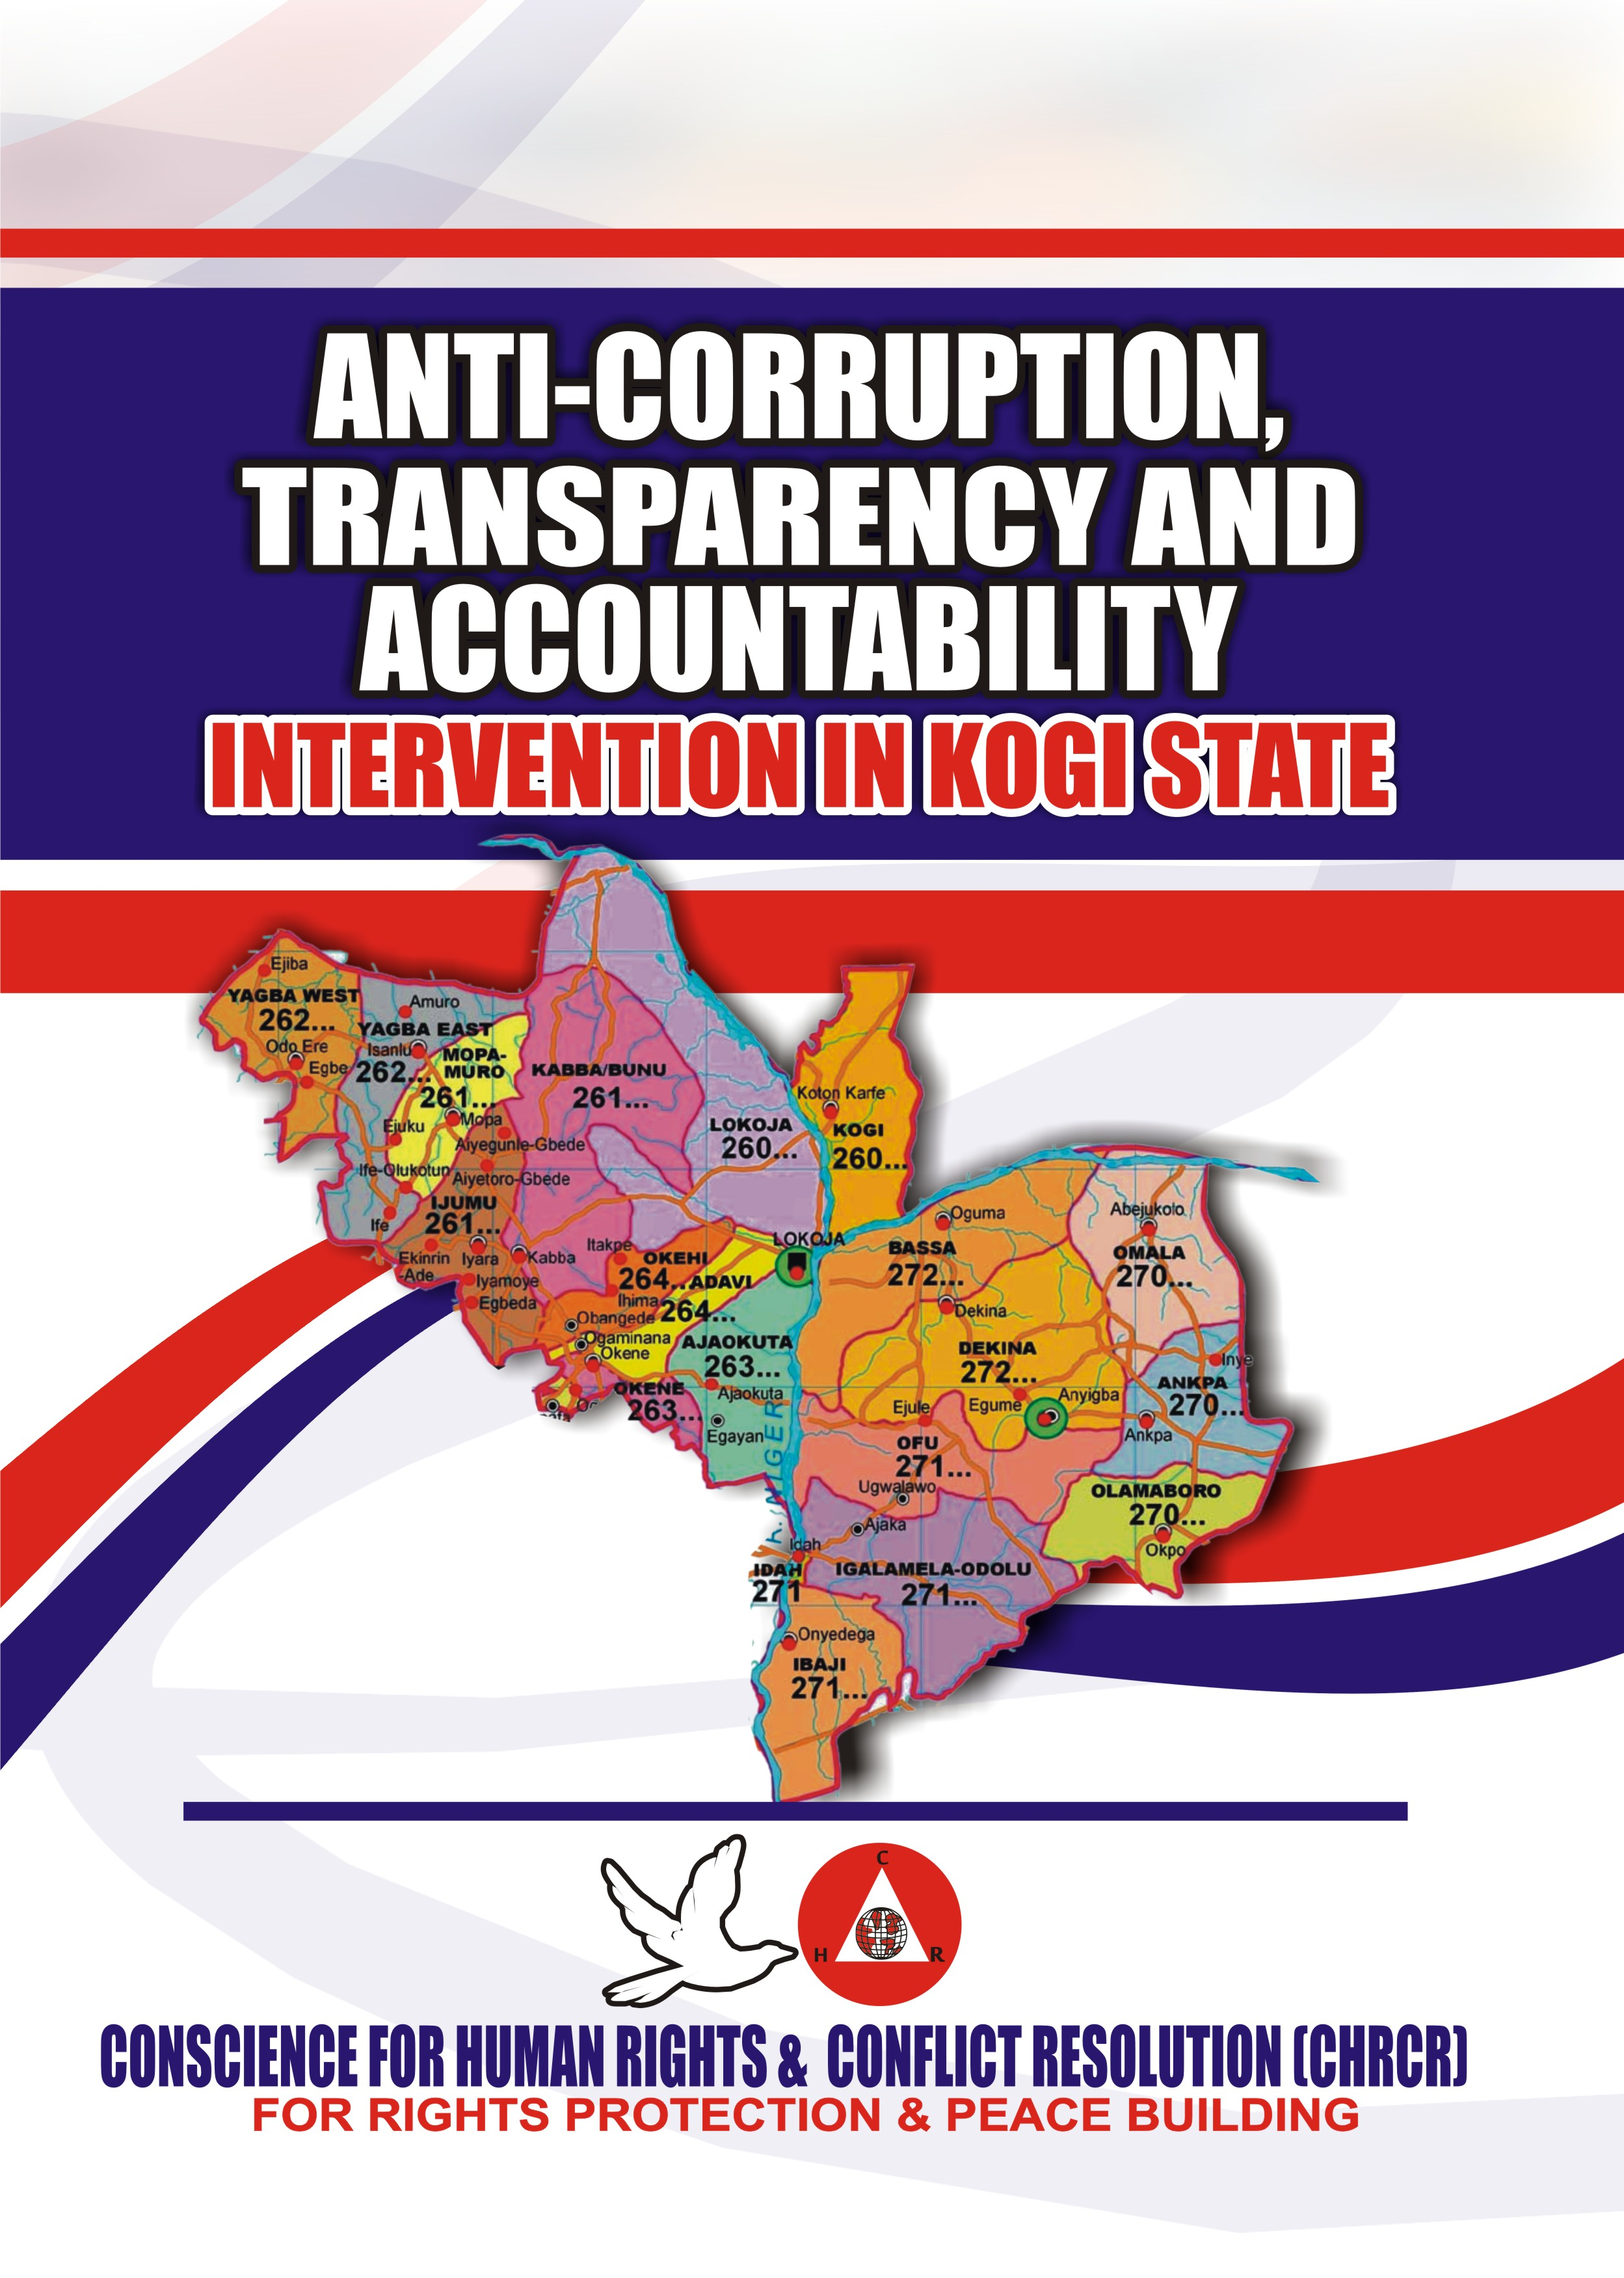 Reports of One Year Compendium of Activities on Anti-Corruption, Transparency and Accountability Int